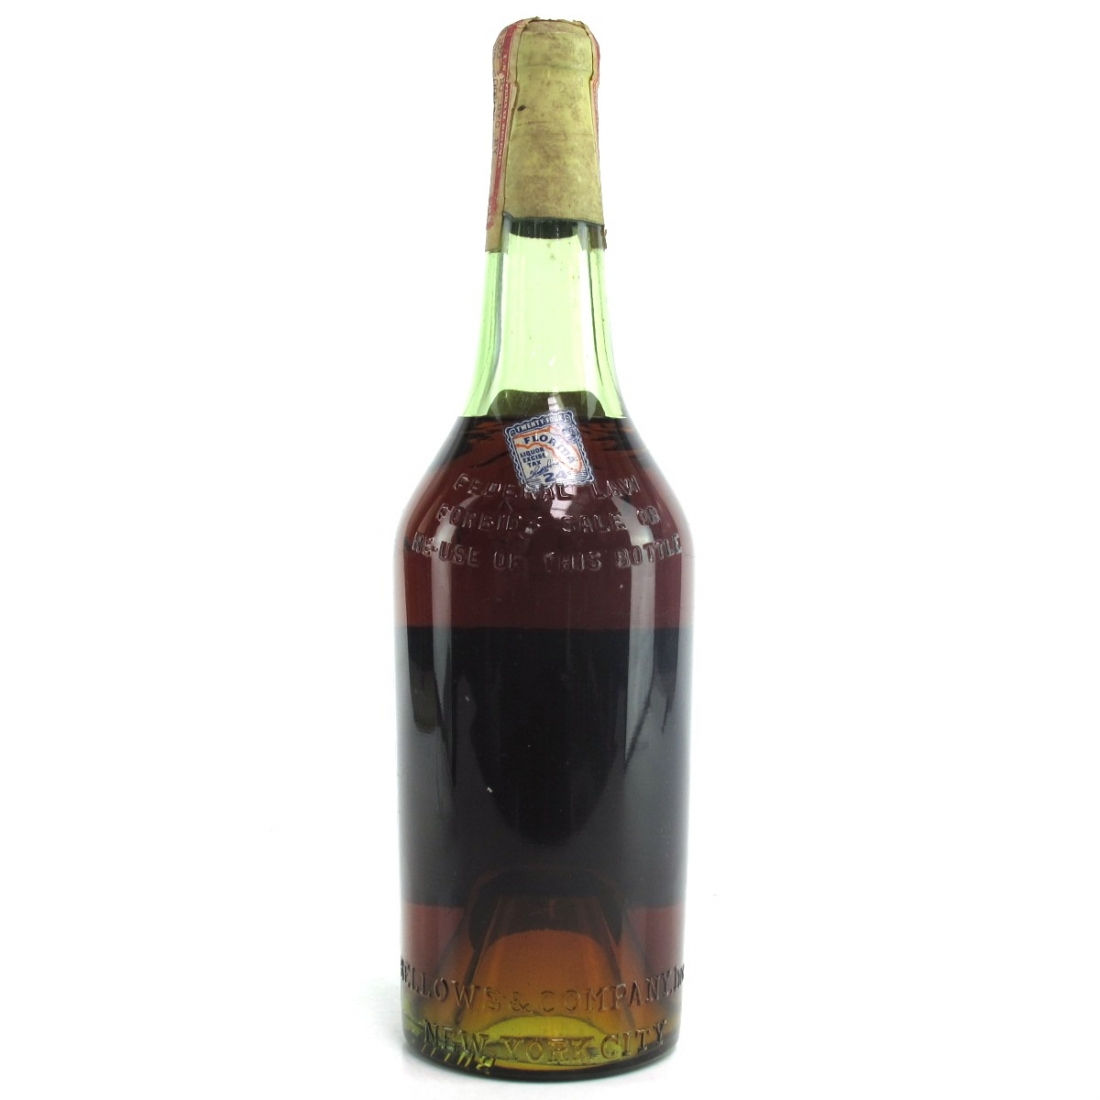 Bellows & Company 20 Year Old V.E Fine Cognac 1940s